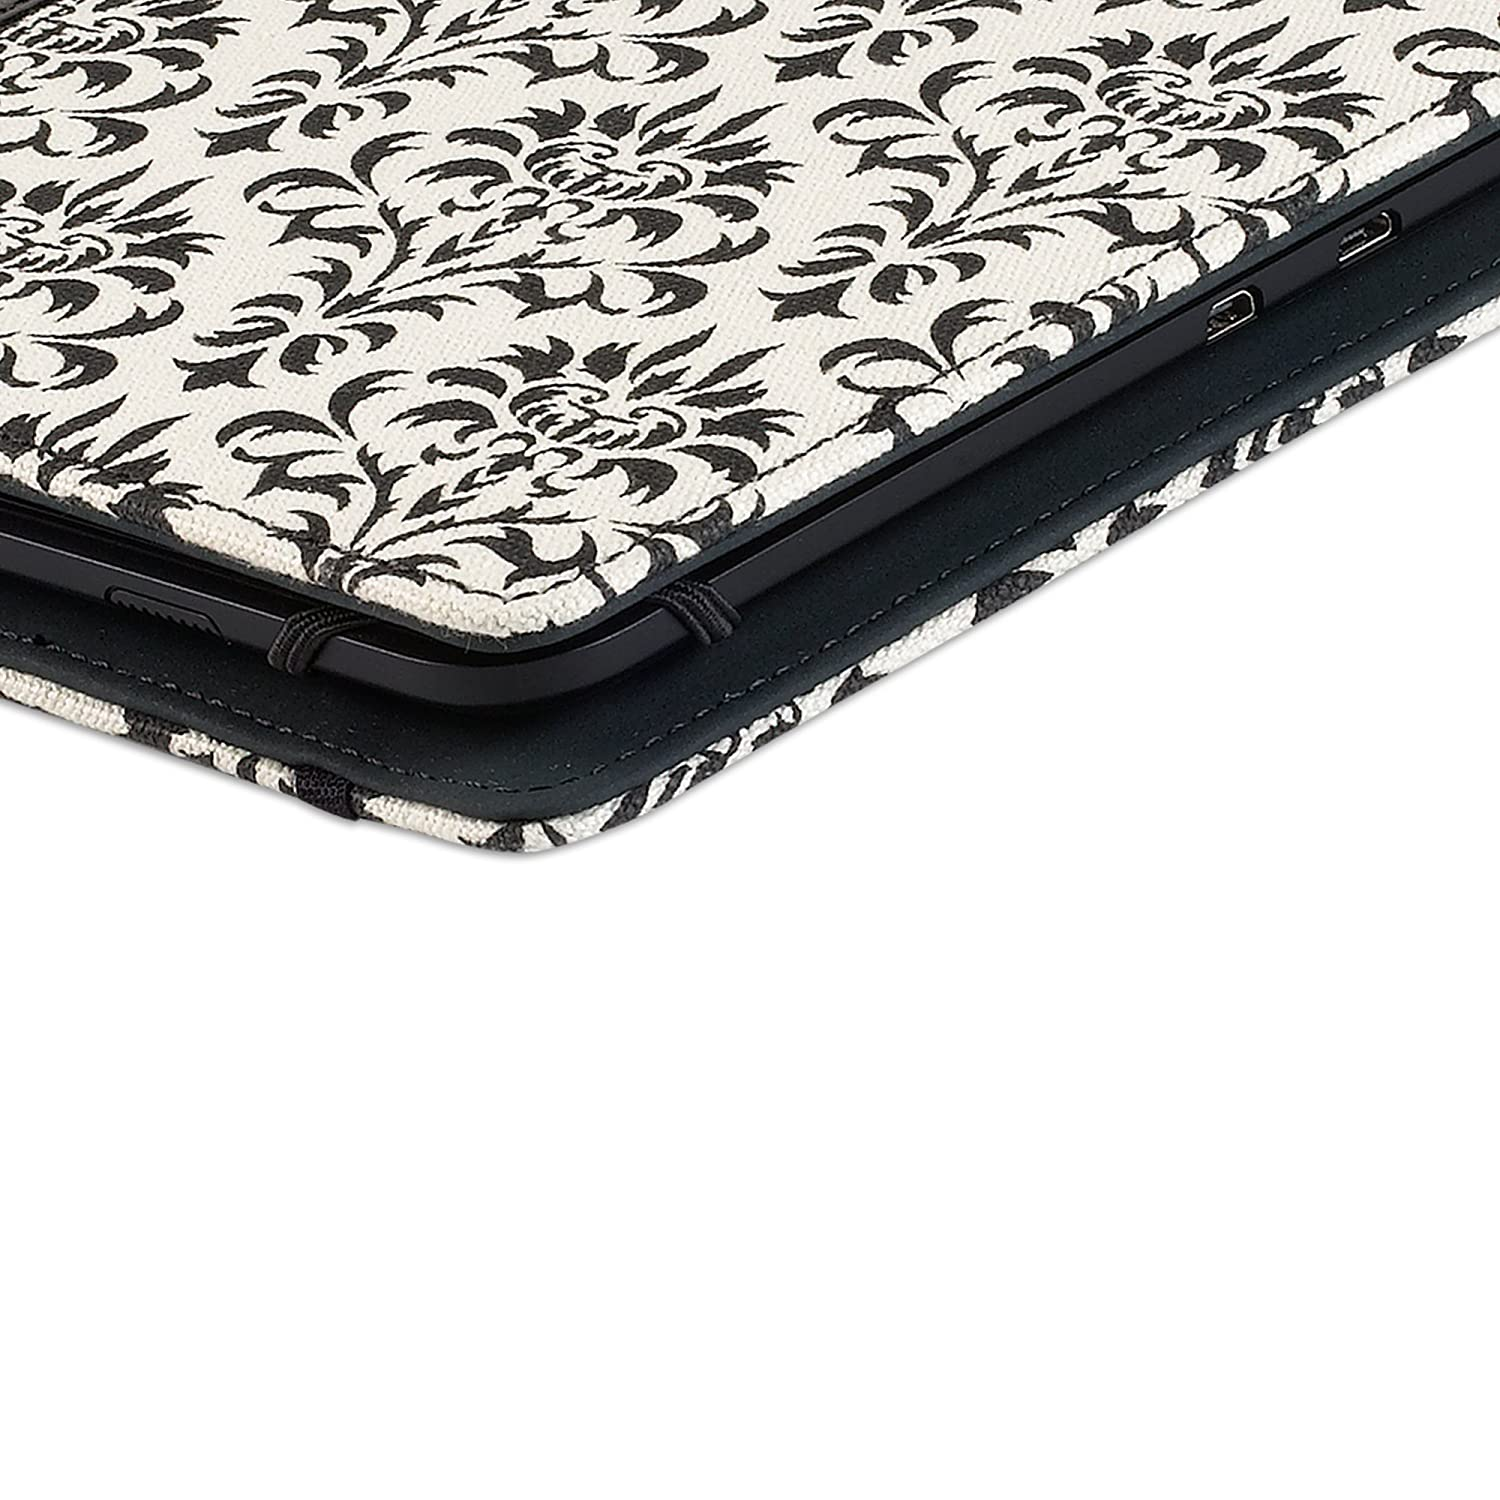 Verso Trends Versailles Damask Case for Kindle Fire HD 7 will only fit Kindle Fire HD 7